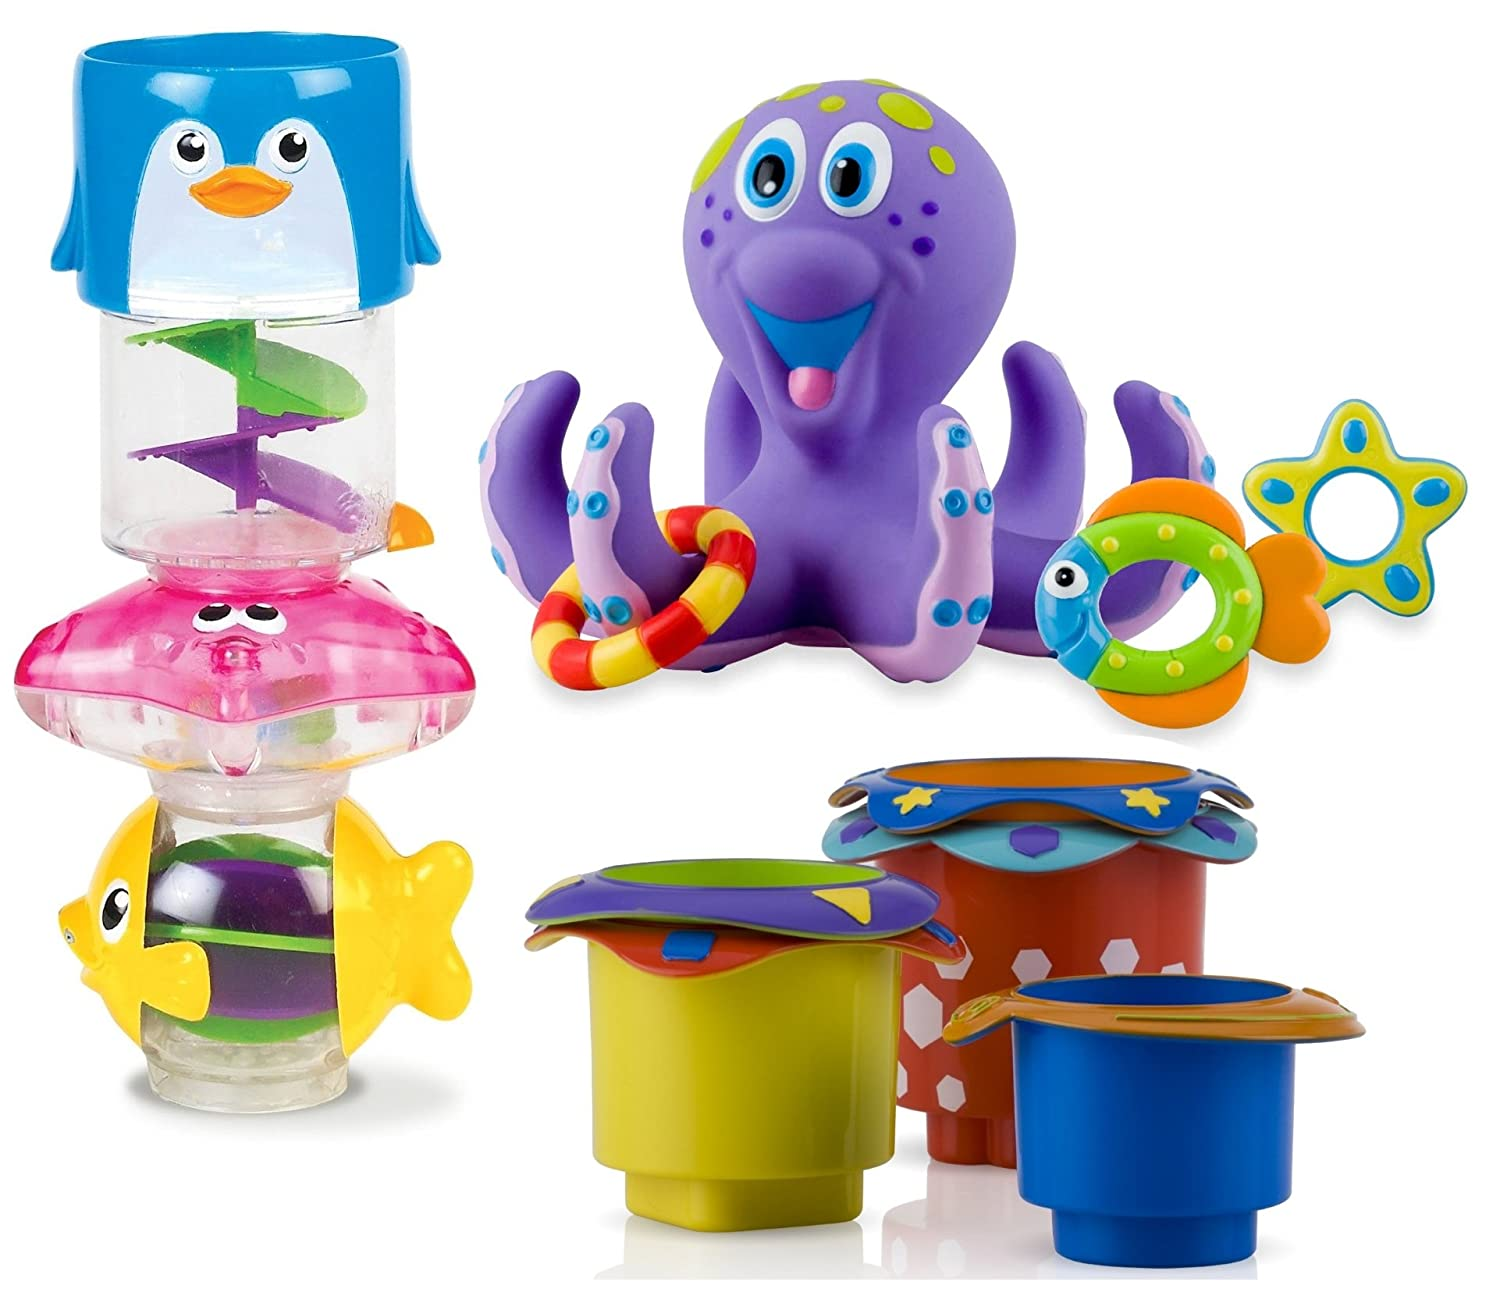 Munchkin Wonder Waterway Bath Tub Toy With Stacking Cups And Time Octopus Delicate